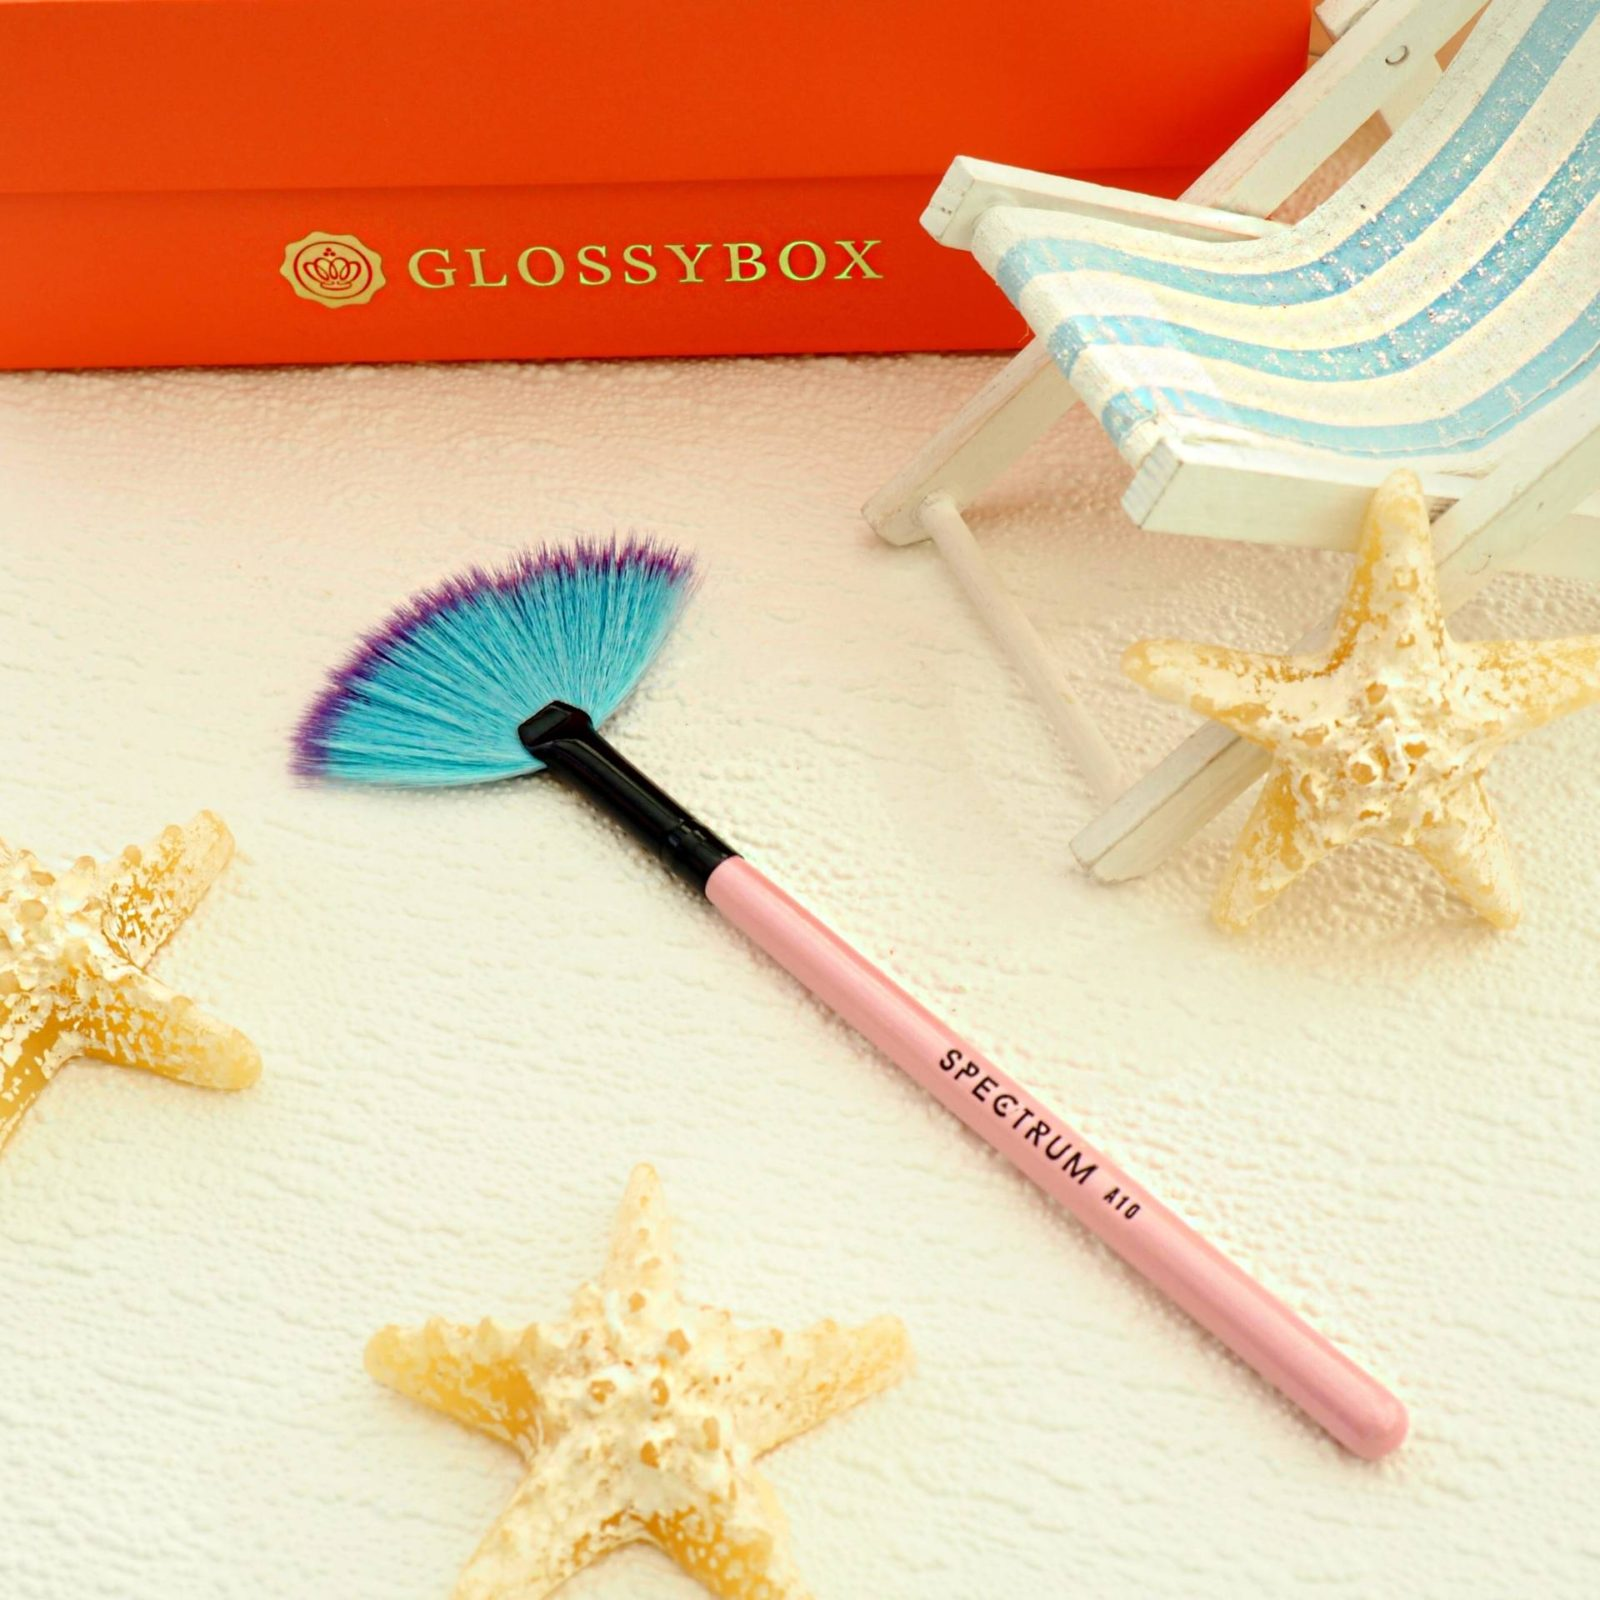 Glossybox Spectrum Brush